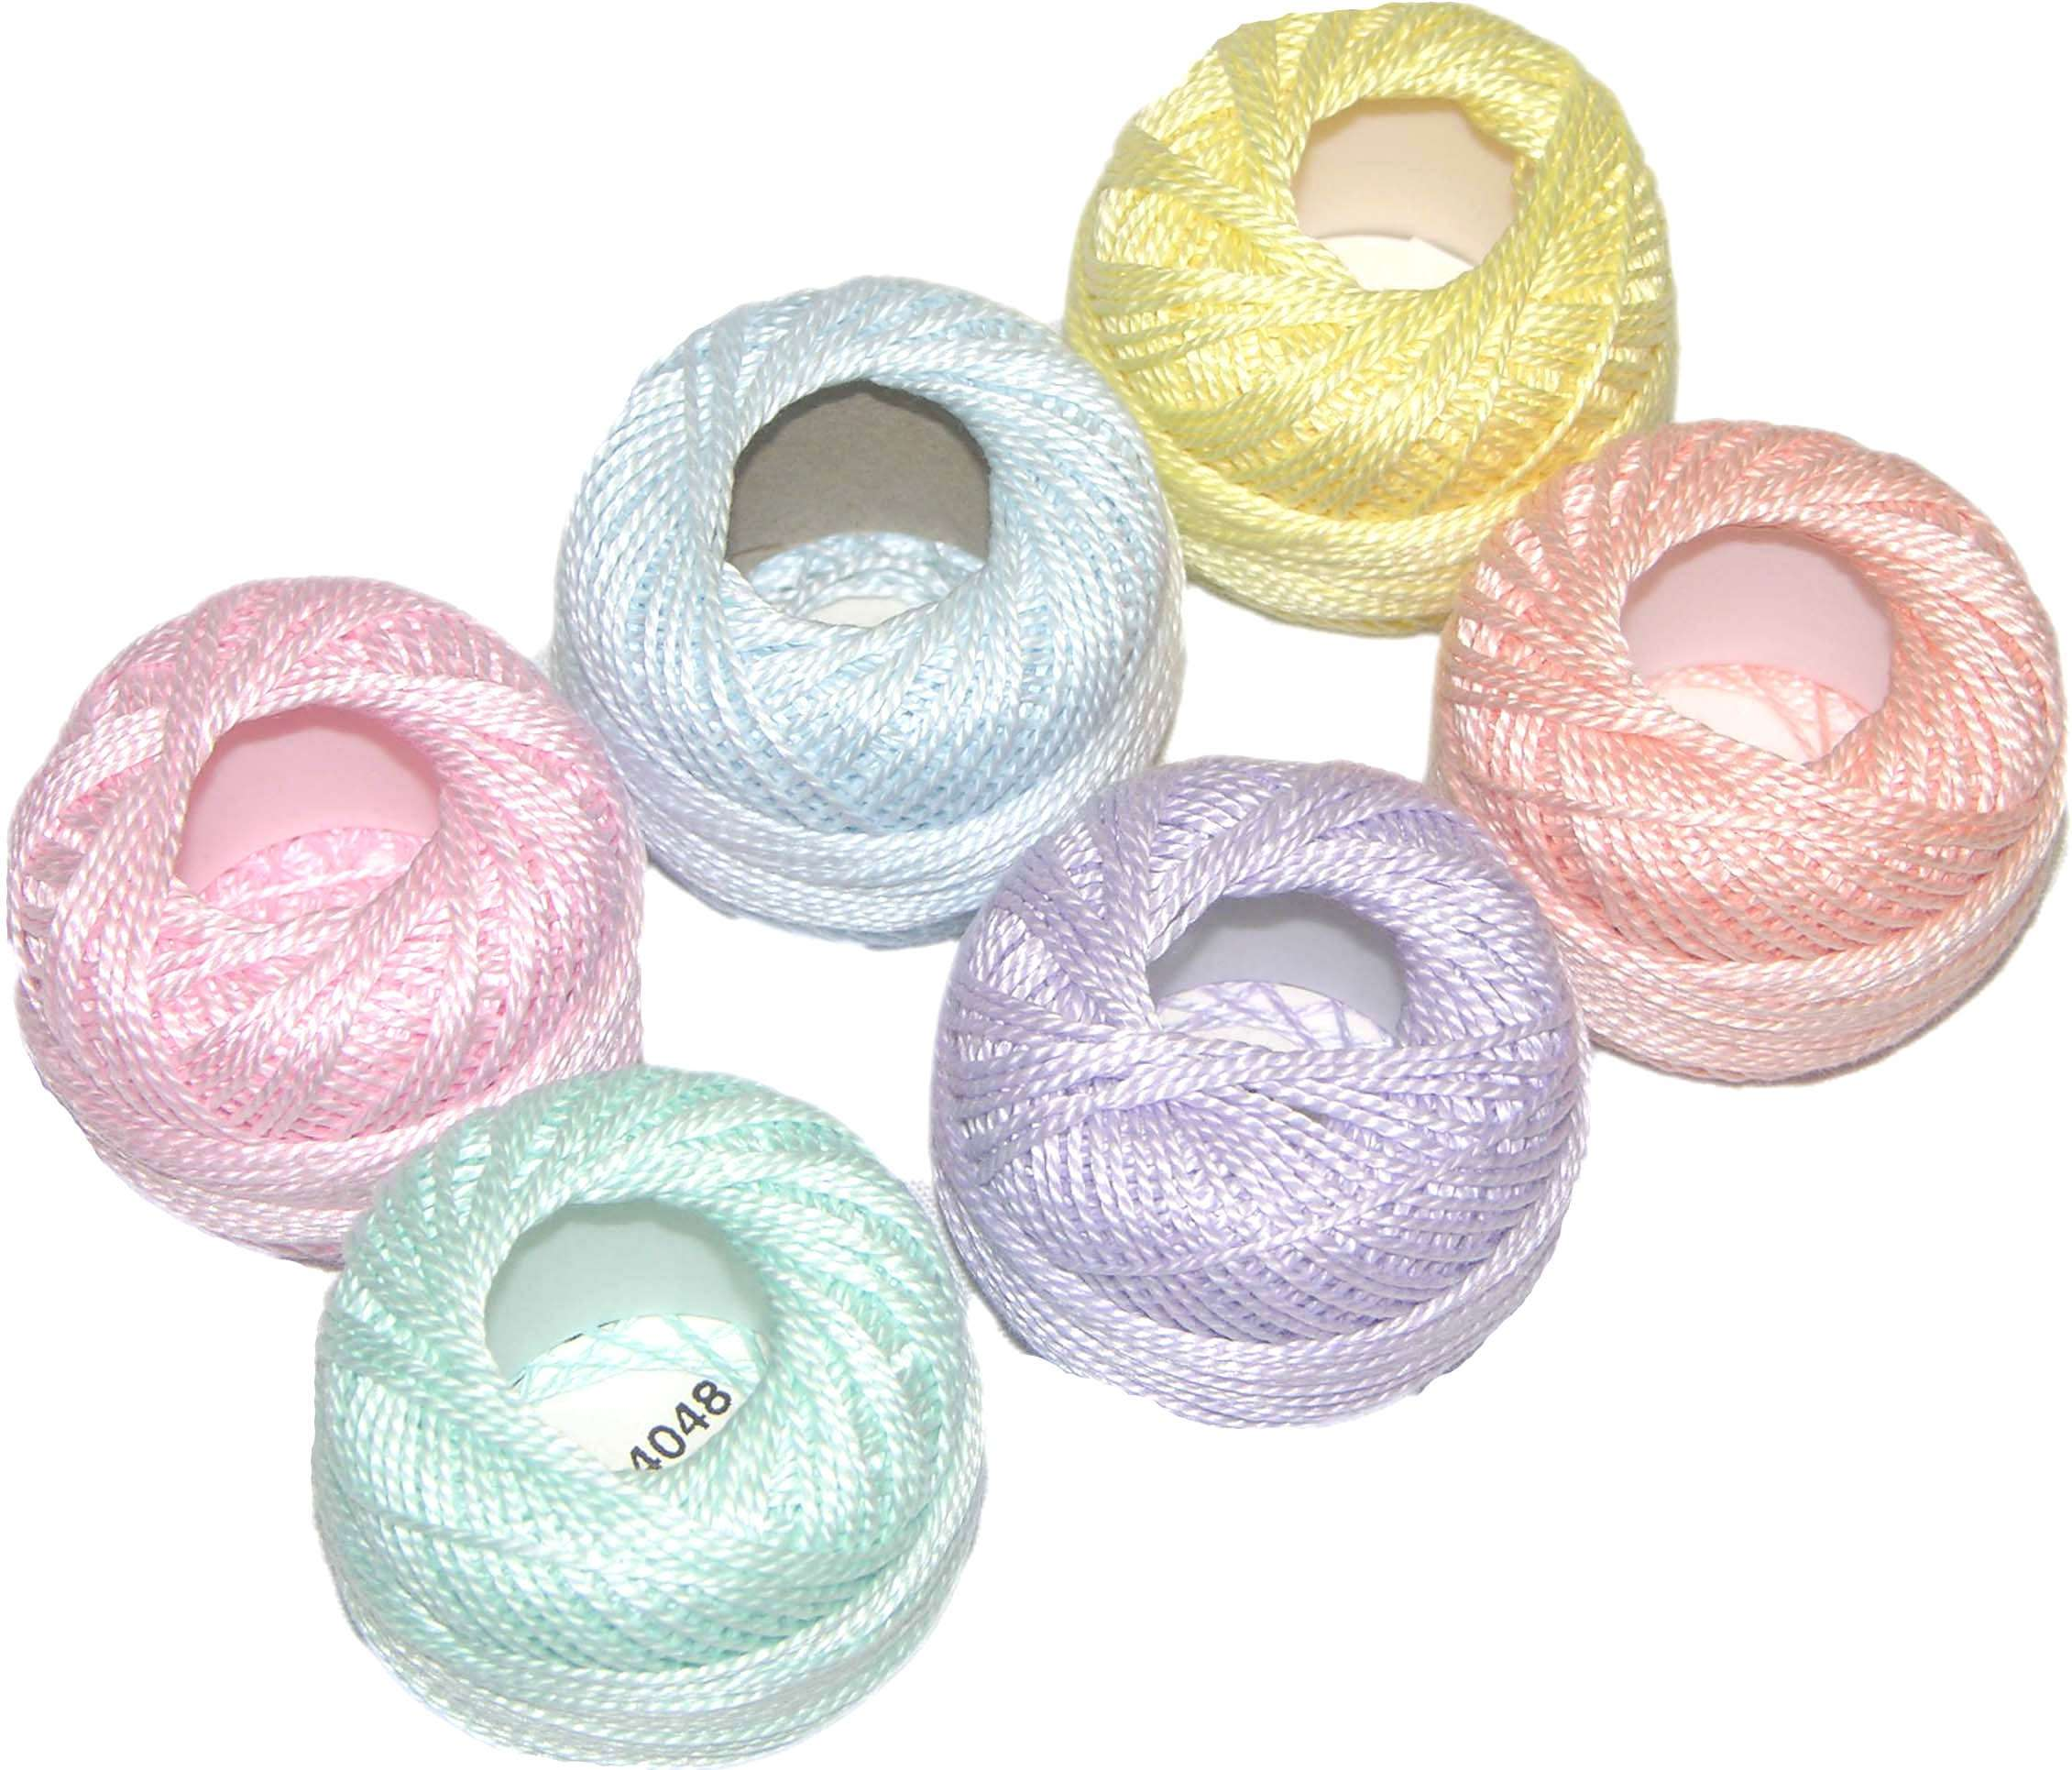 10 gram PASTEL Collection Presencia Finca Perle Cotton Thread Sampler Pack - for sashiko embroidery Size 5 and quilting